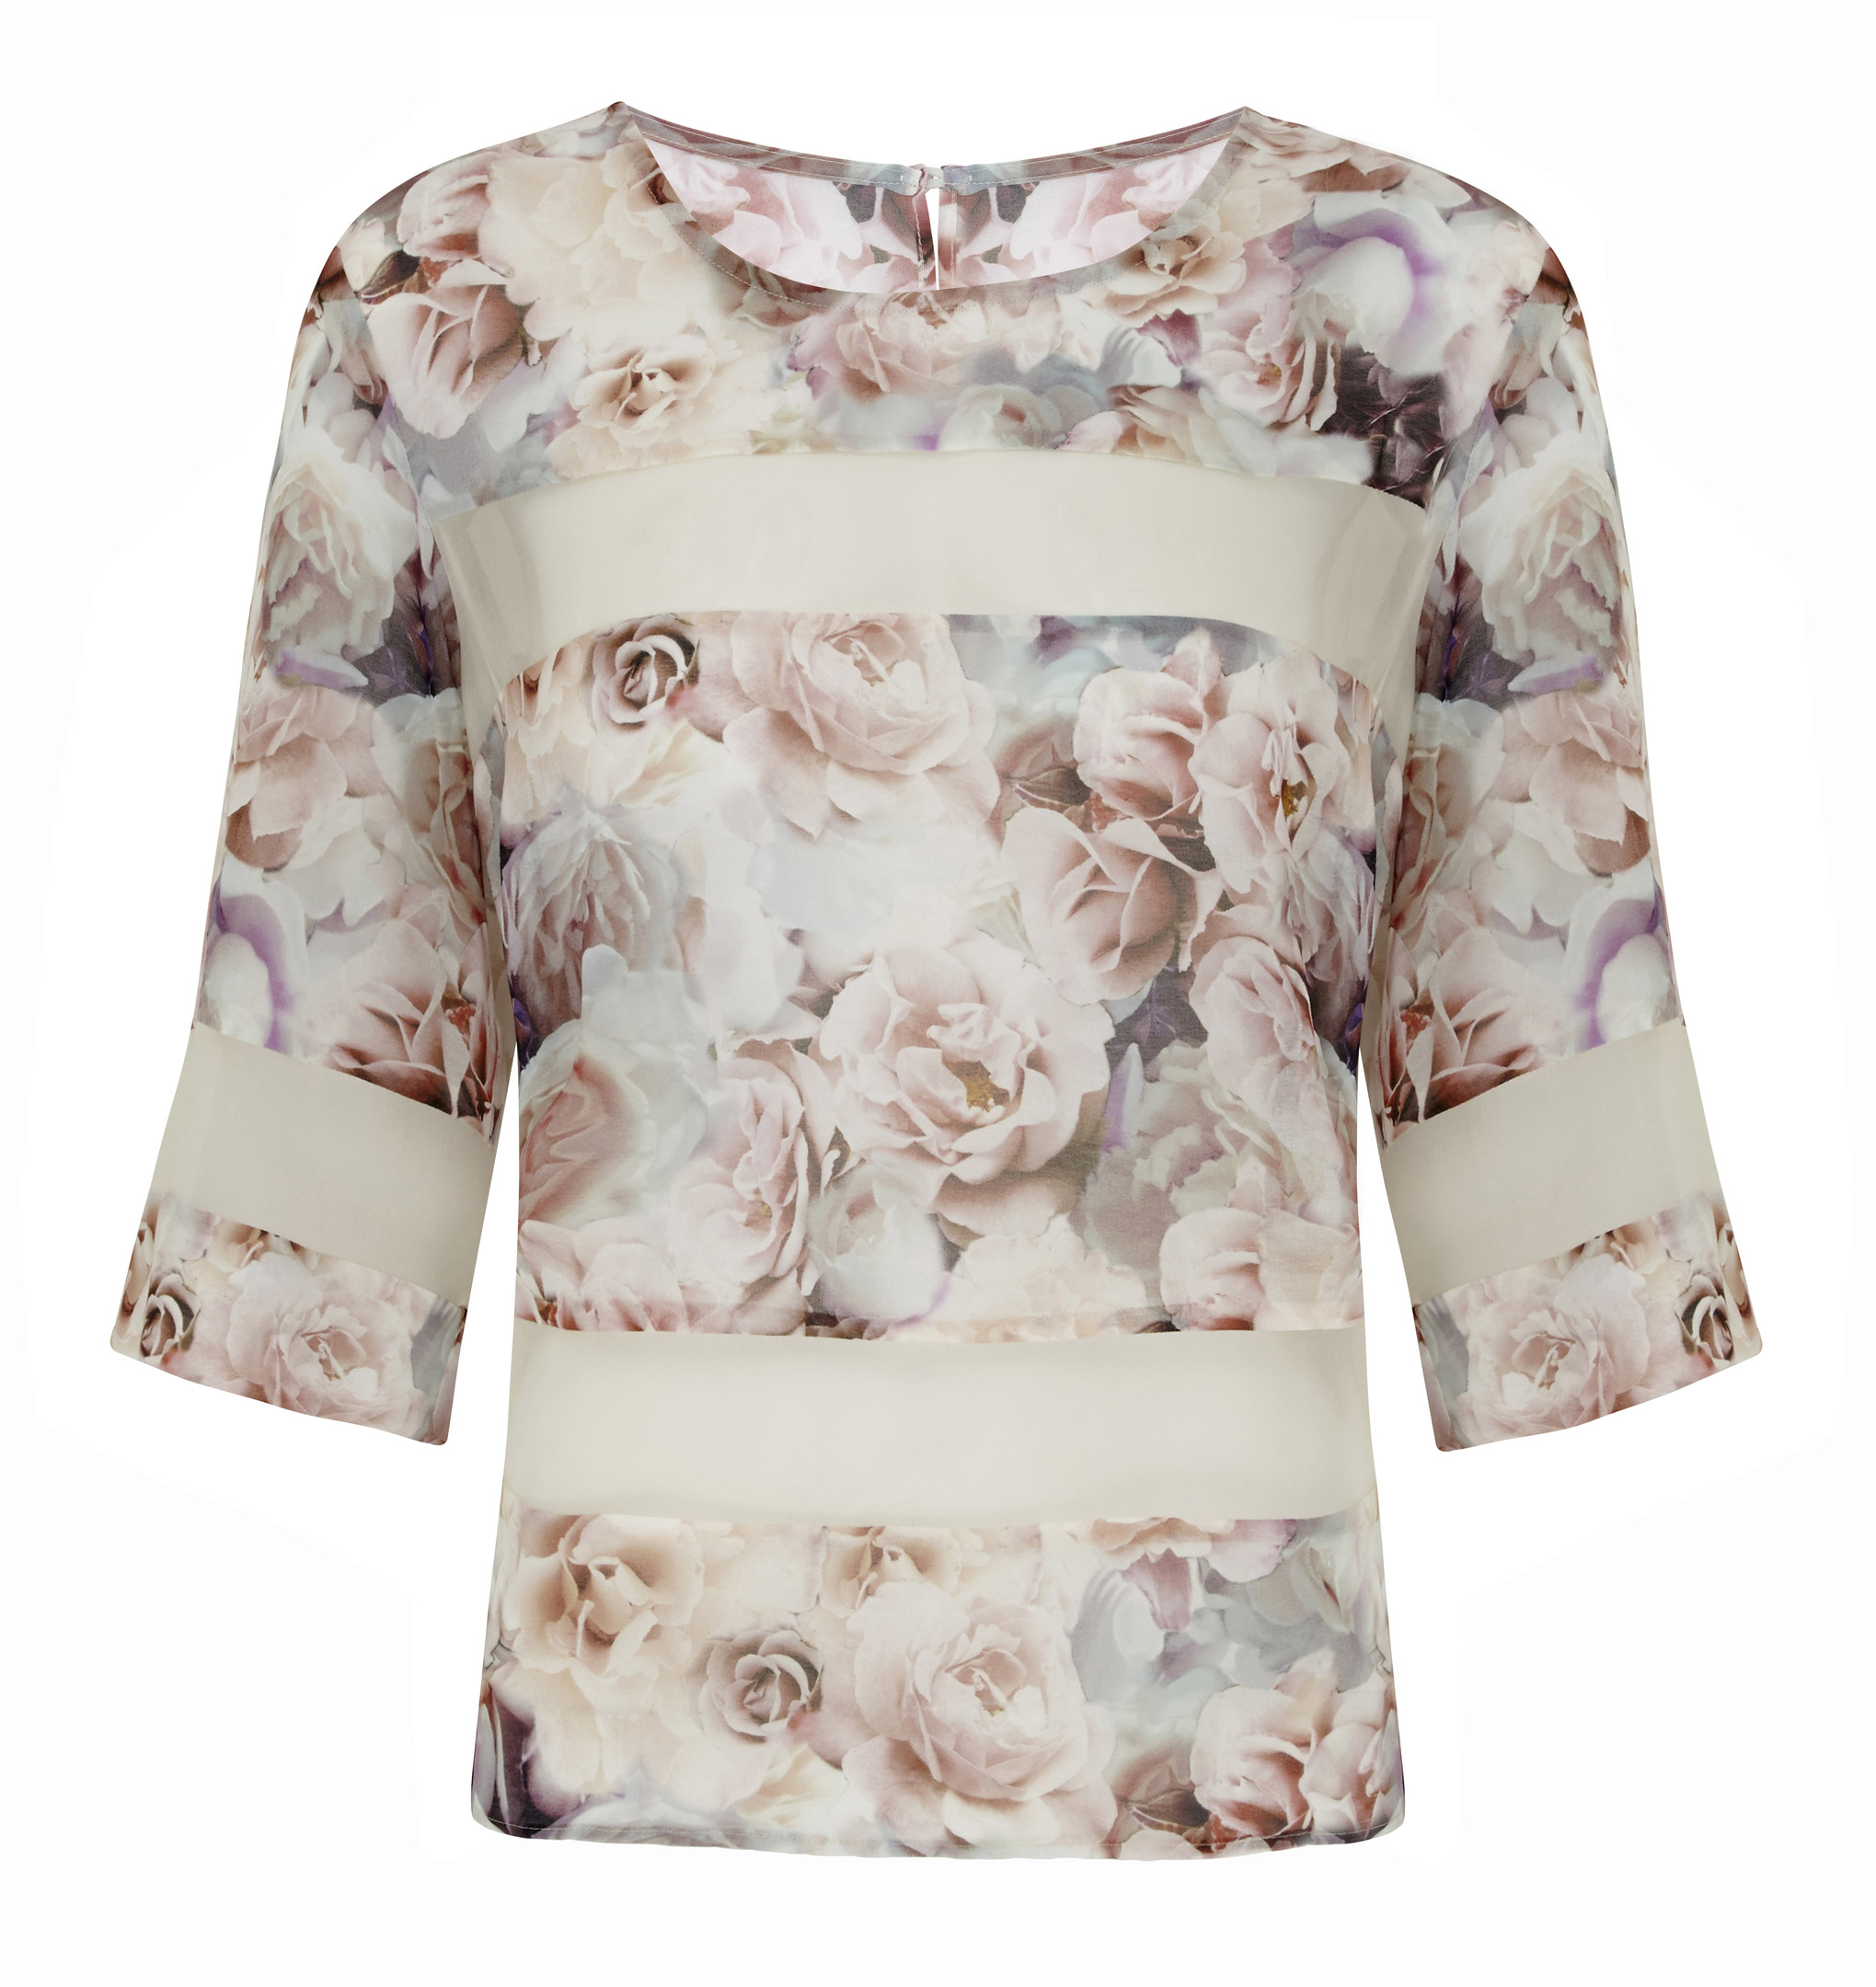 Limited Edition Floral Shell Tee £35.